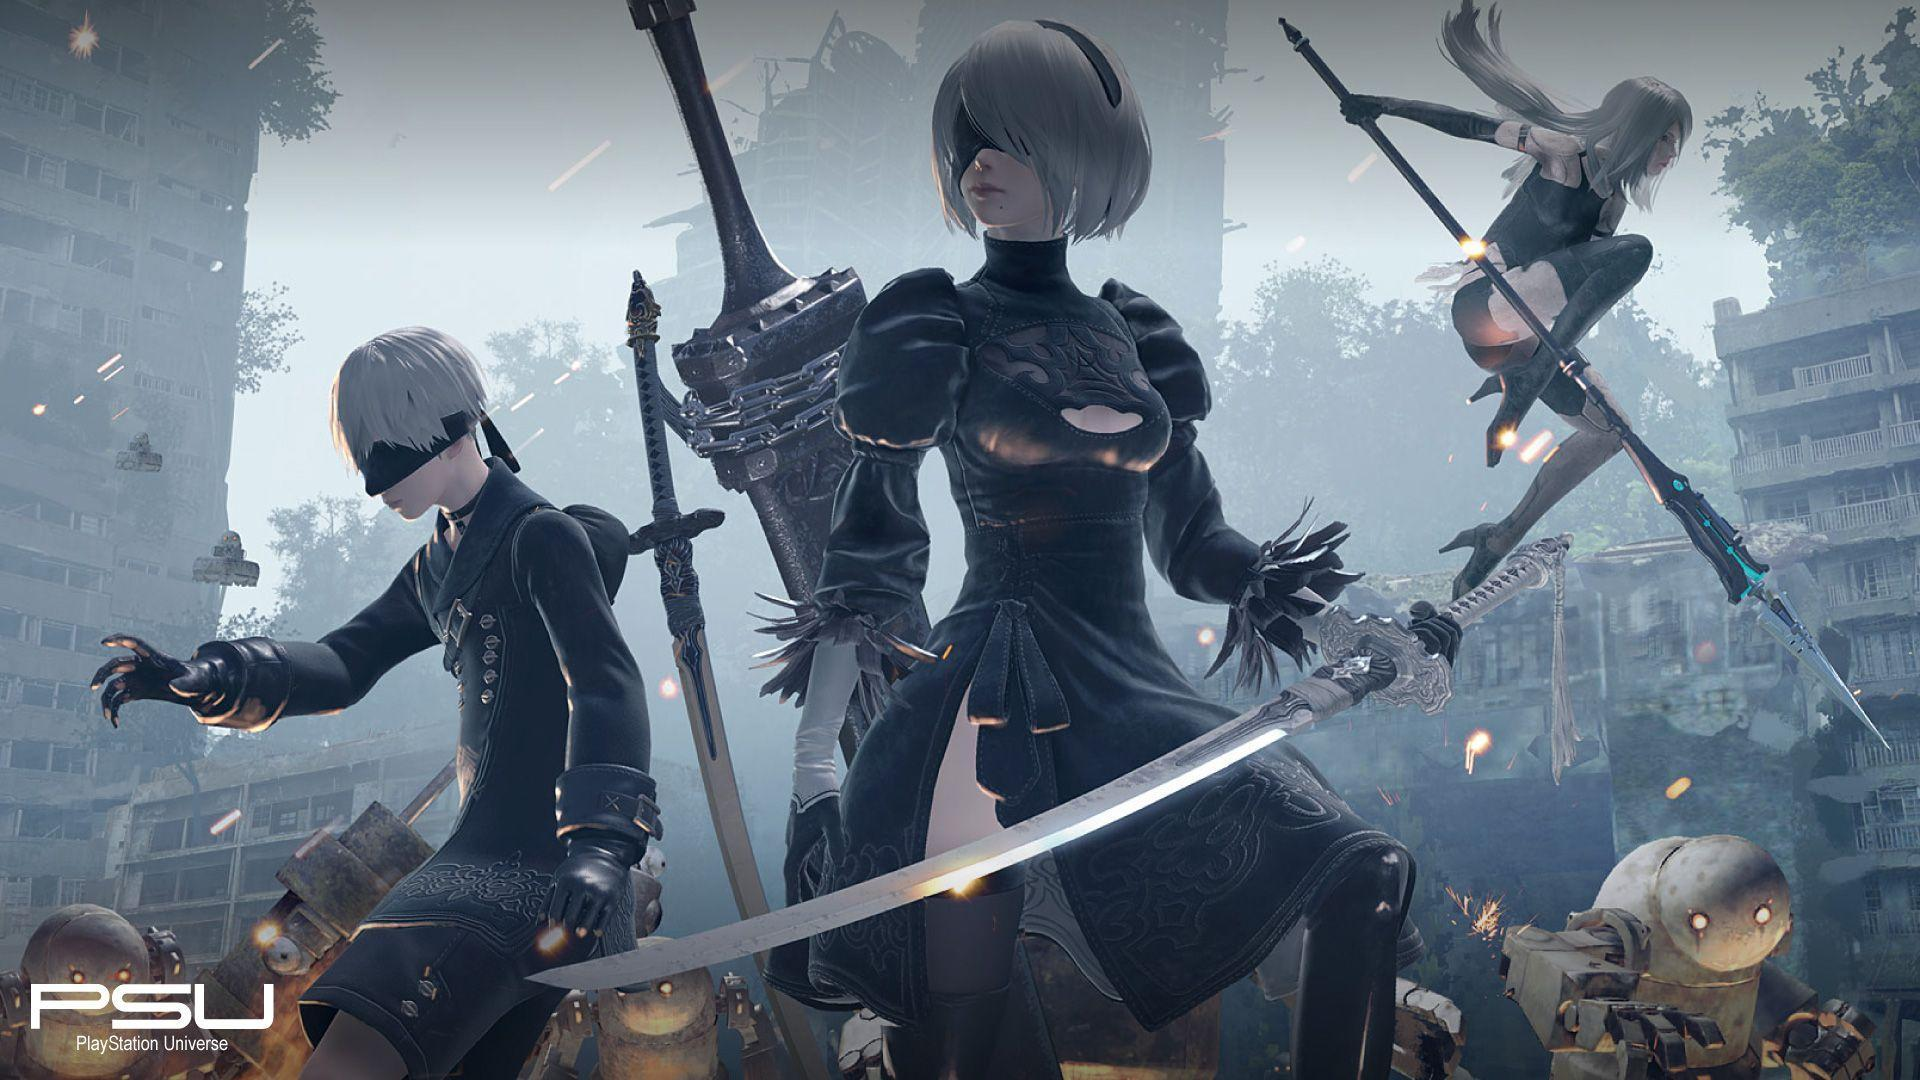 Nier Automata Wallpapers Top Free Nier Automata Backgrounds